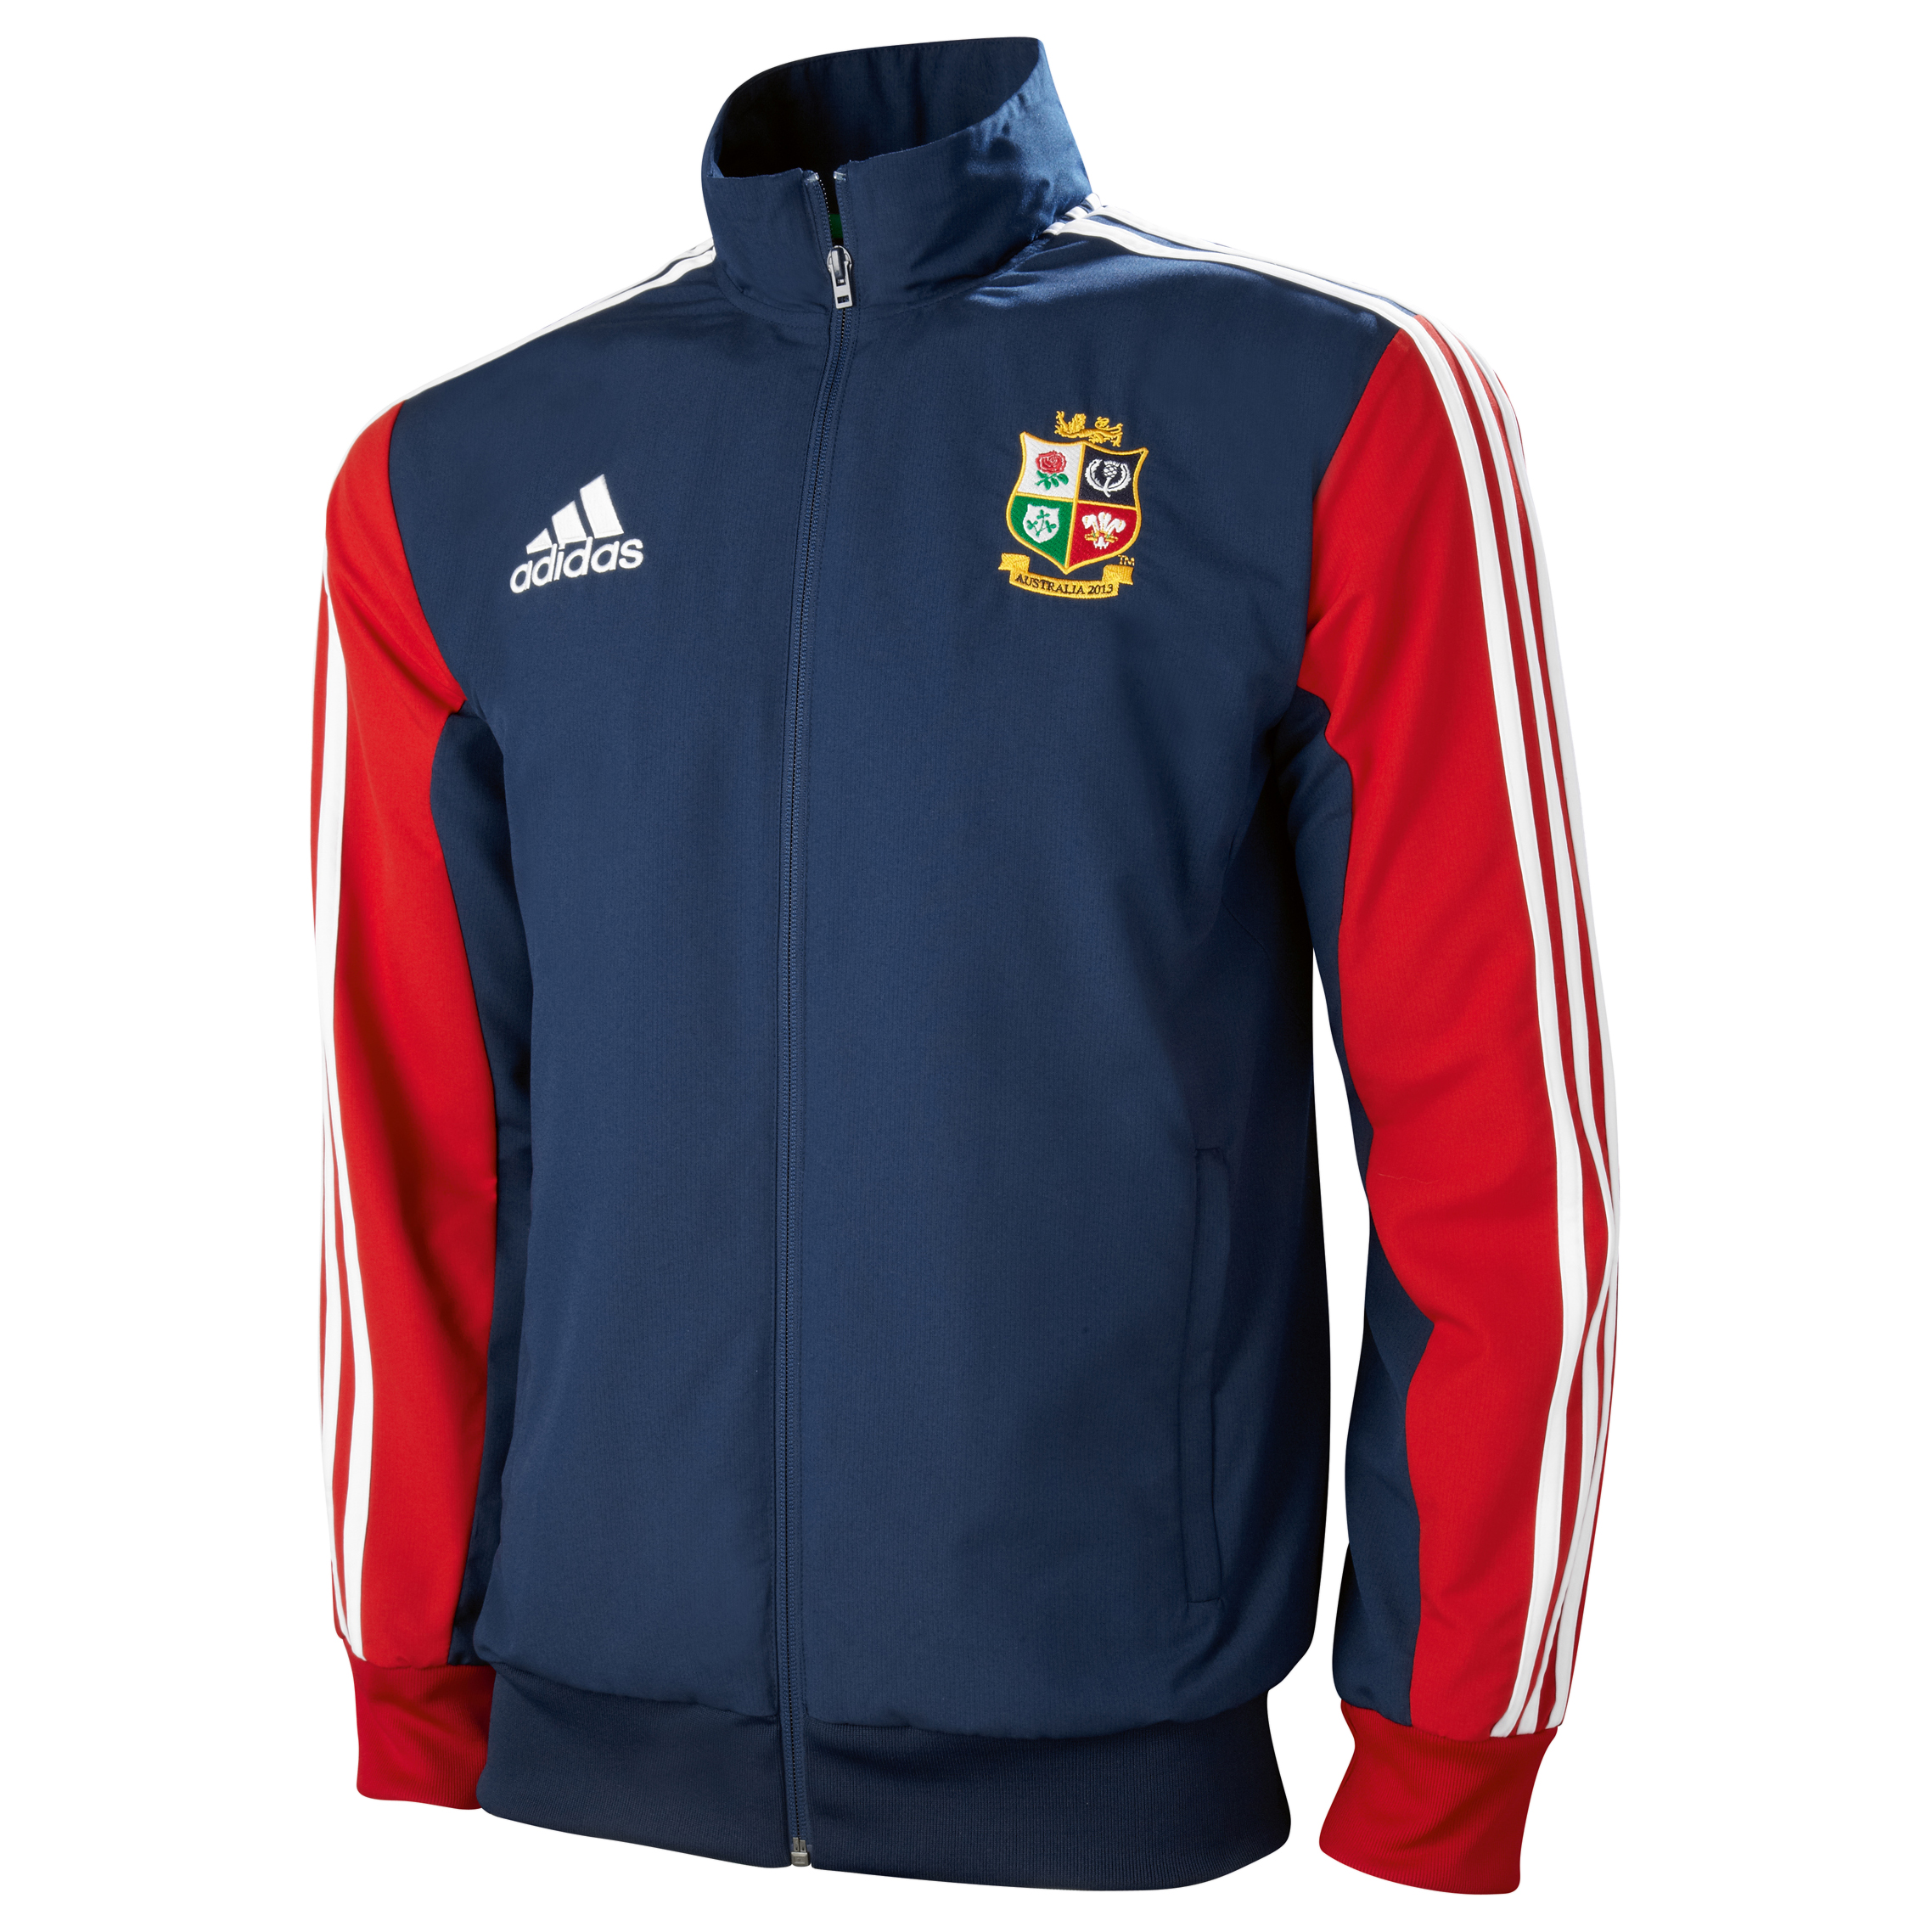 adidas British and Irish Lions Presentation Jacket - Collegiate Navy/University Red/White